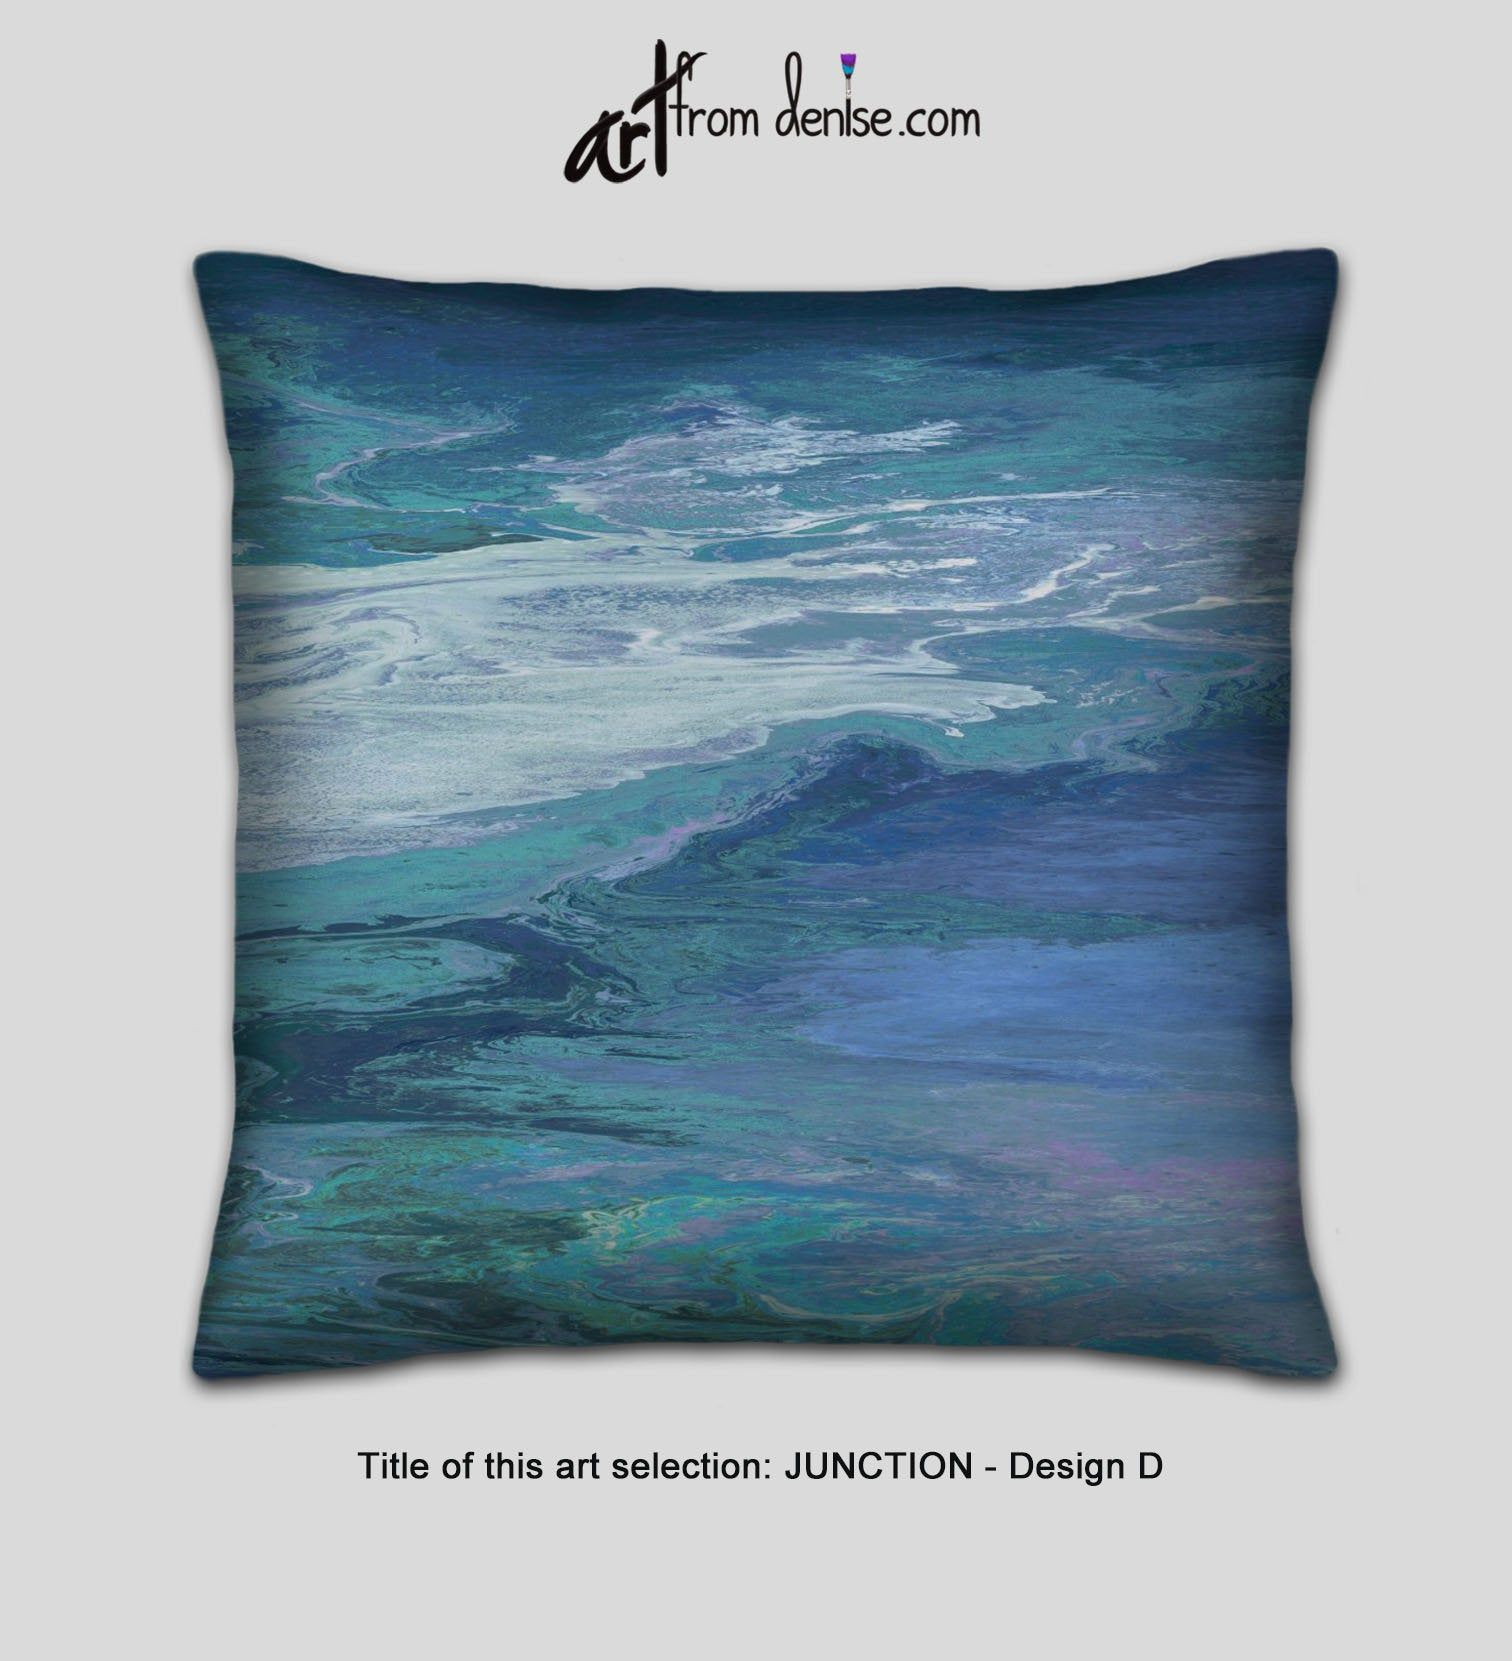 Small Or Oversized Navy Blue Gray Teal Decorative Pillows Etsy In 2020 Navy Blue Decorative Pillows Teal Pillows Decorative Couch Pillow Sets